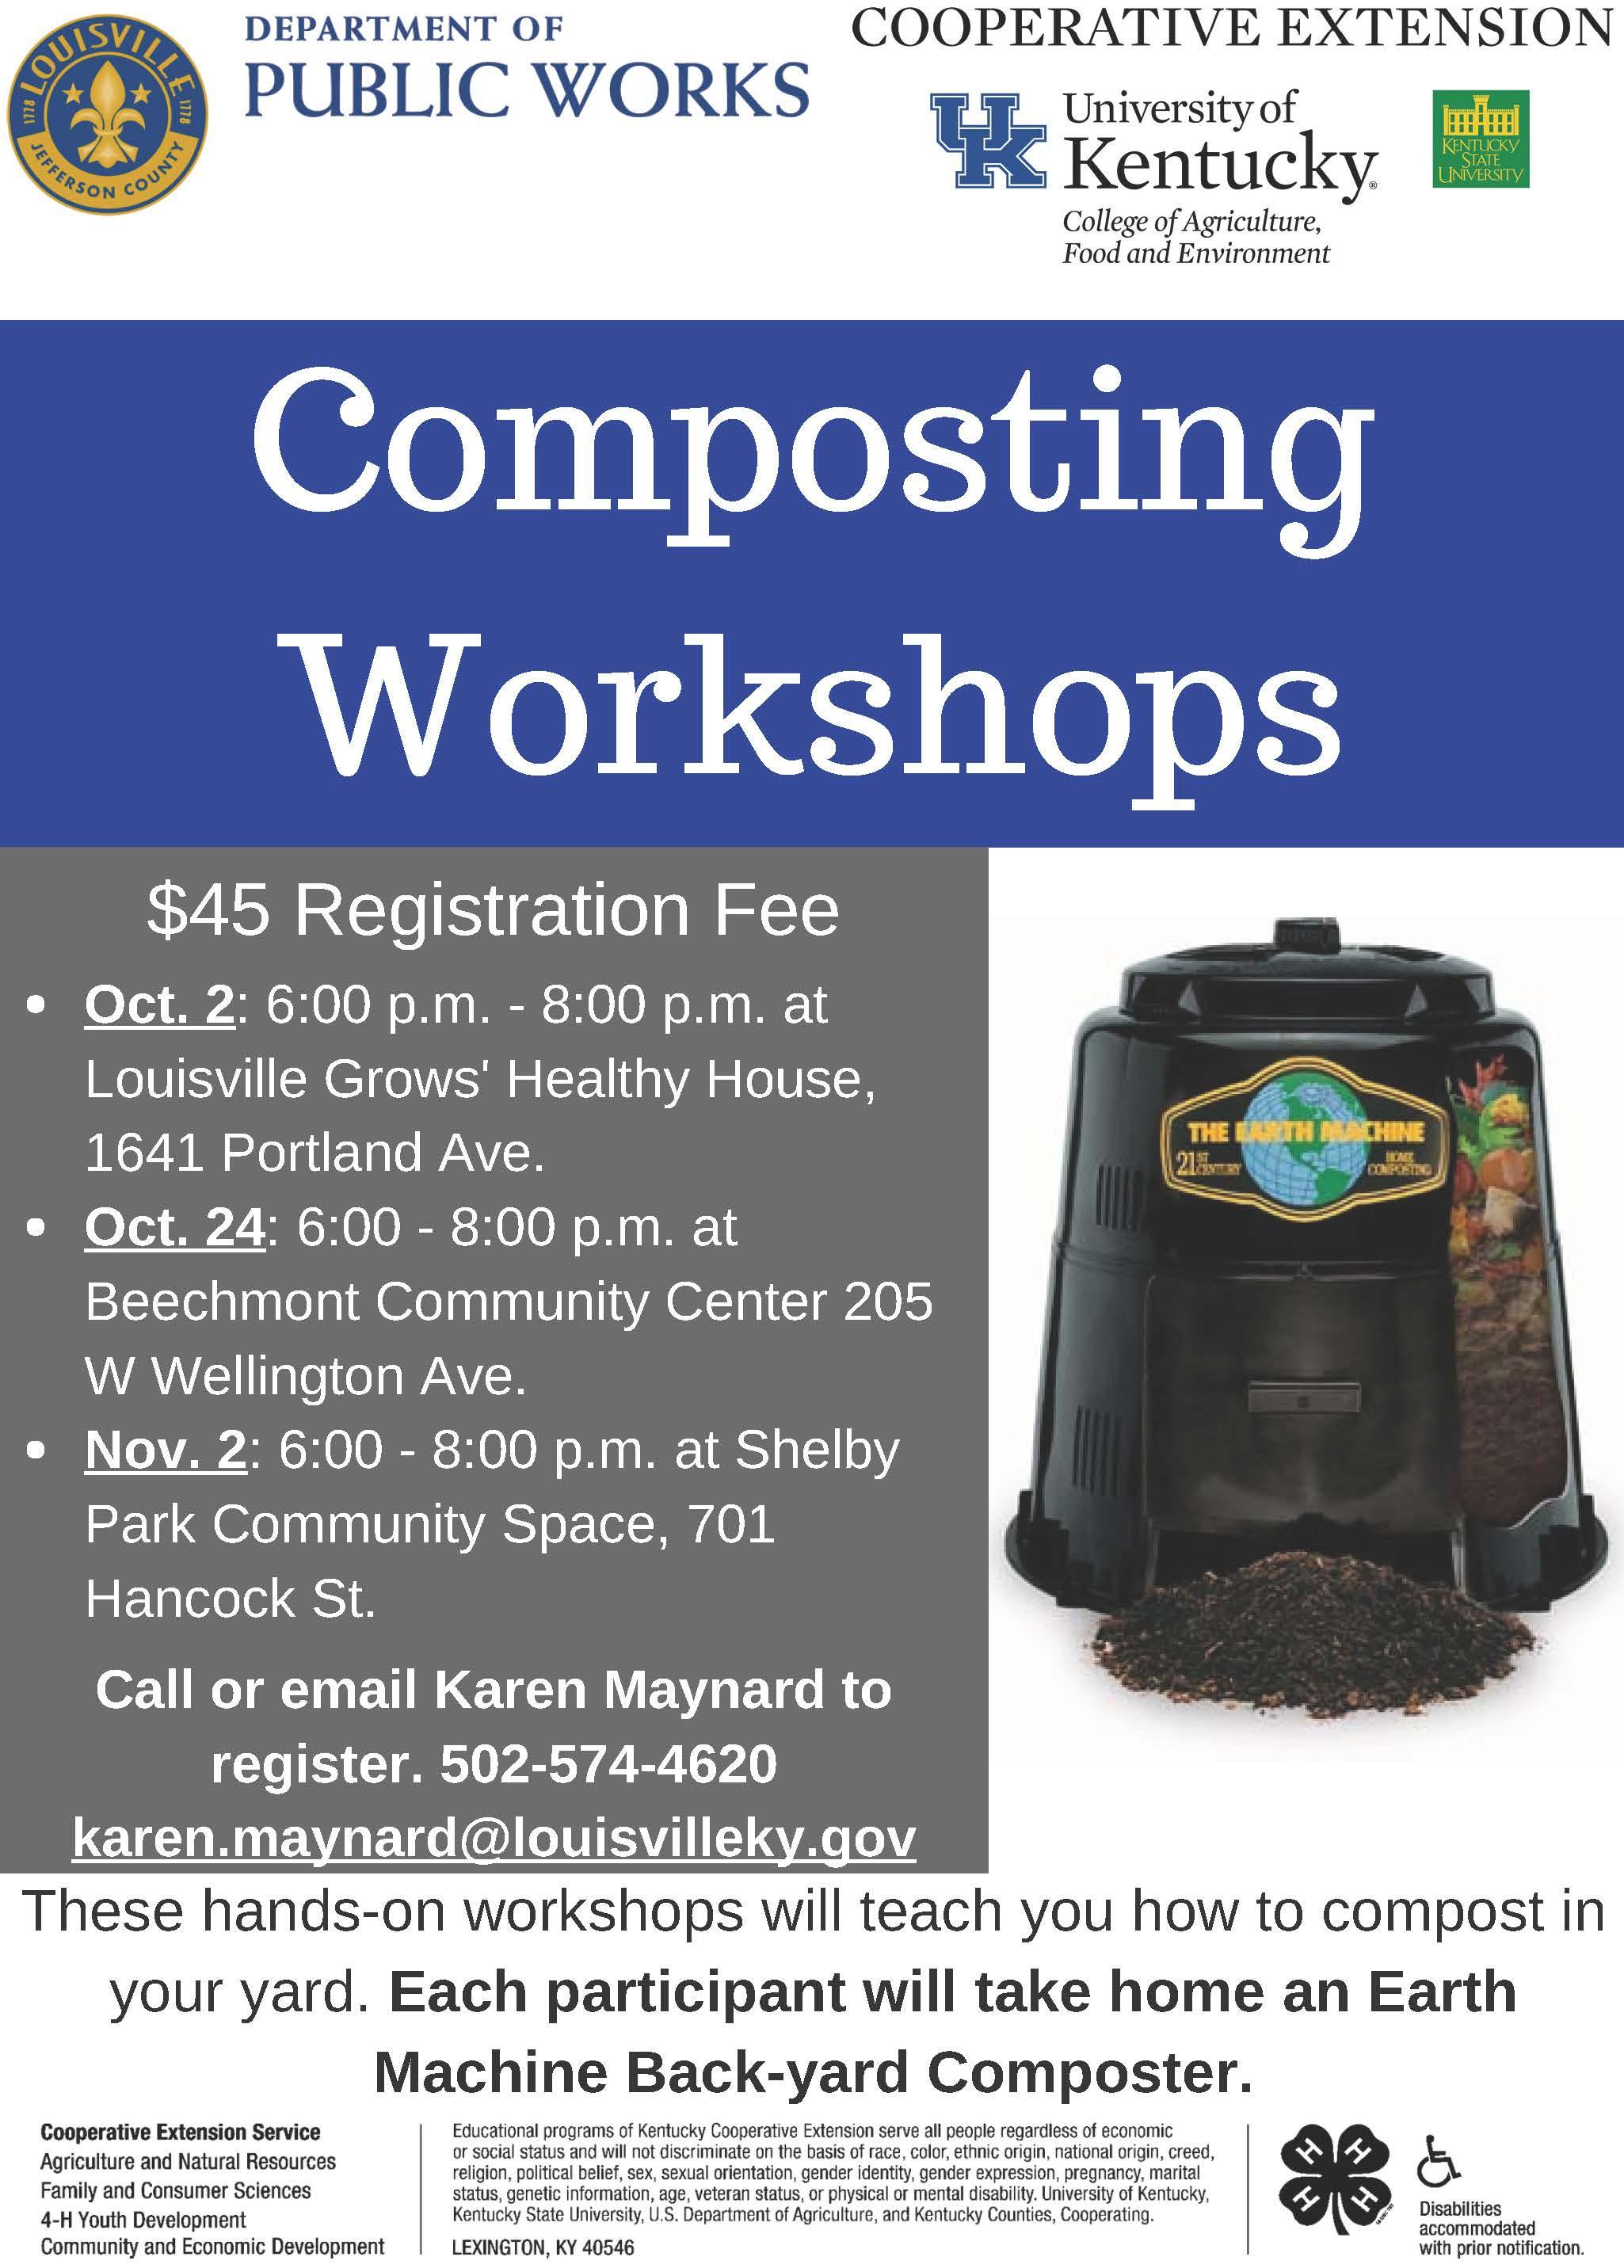 Dates for Composting Workshop